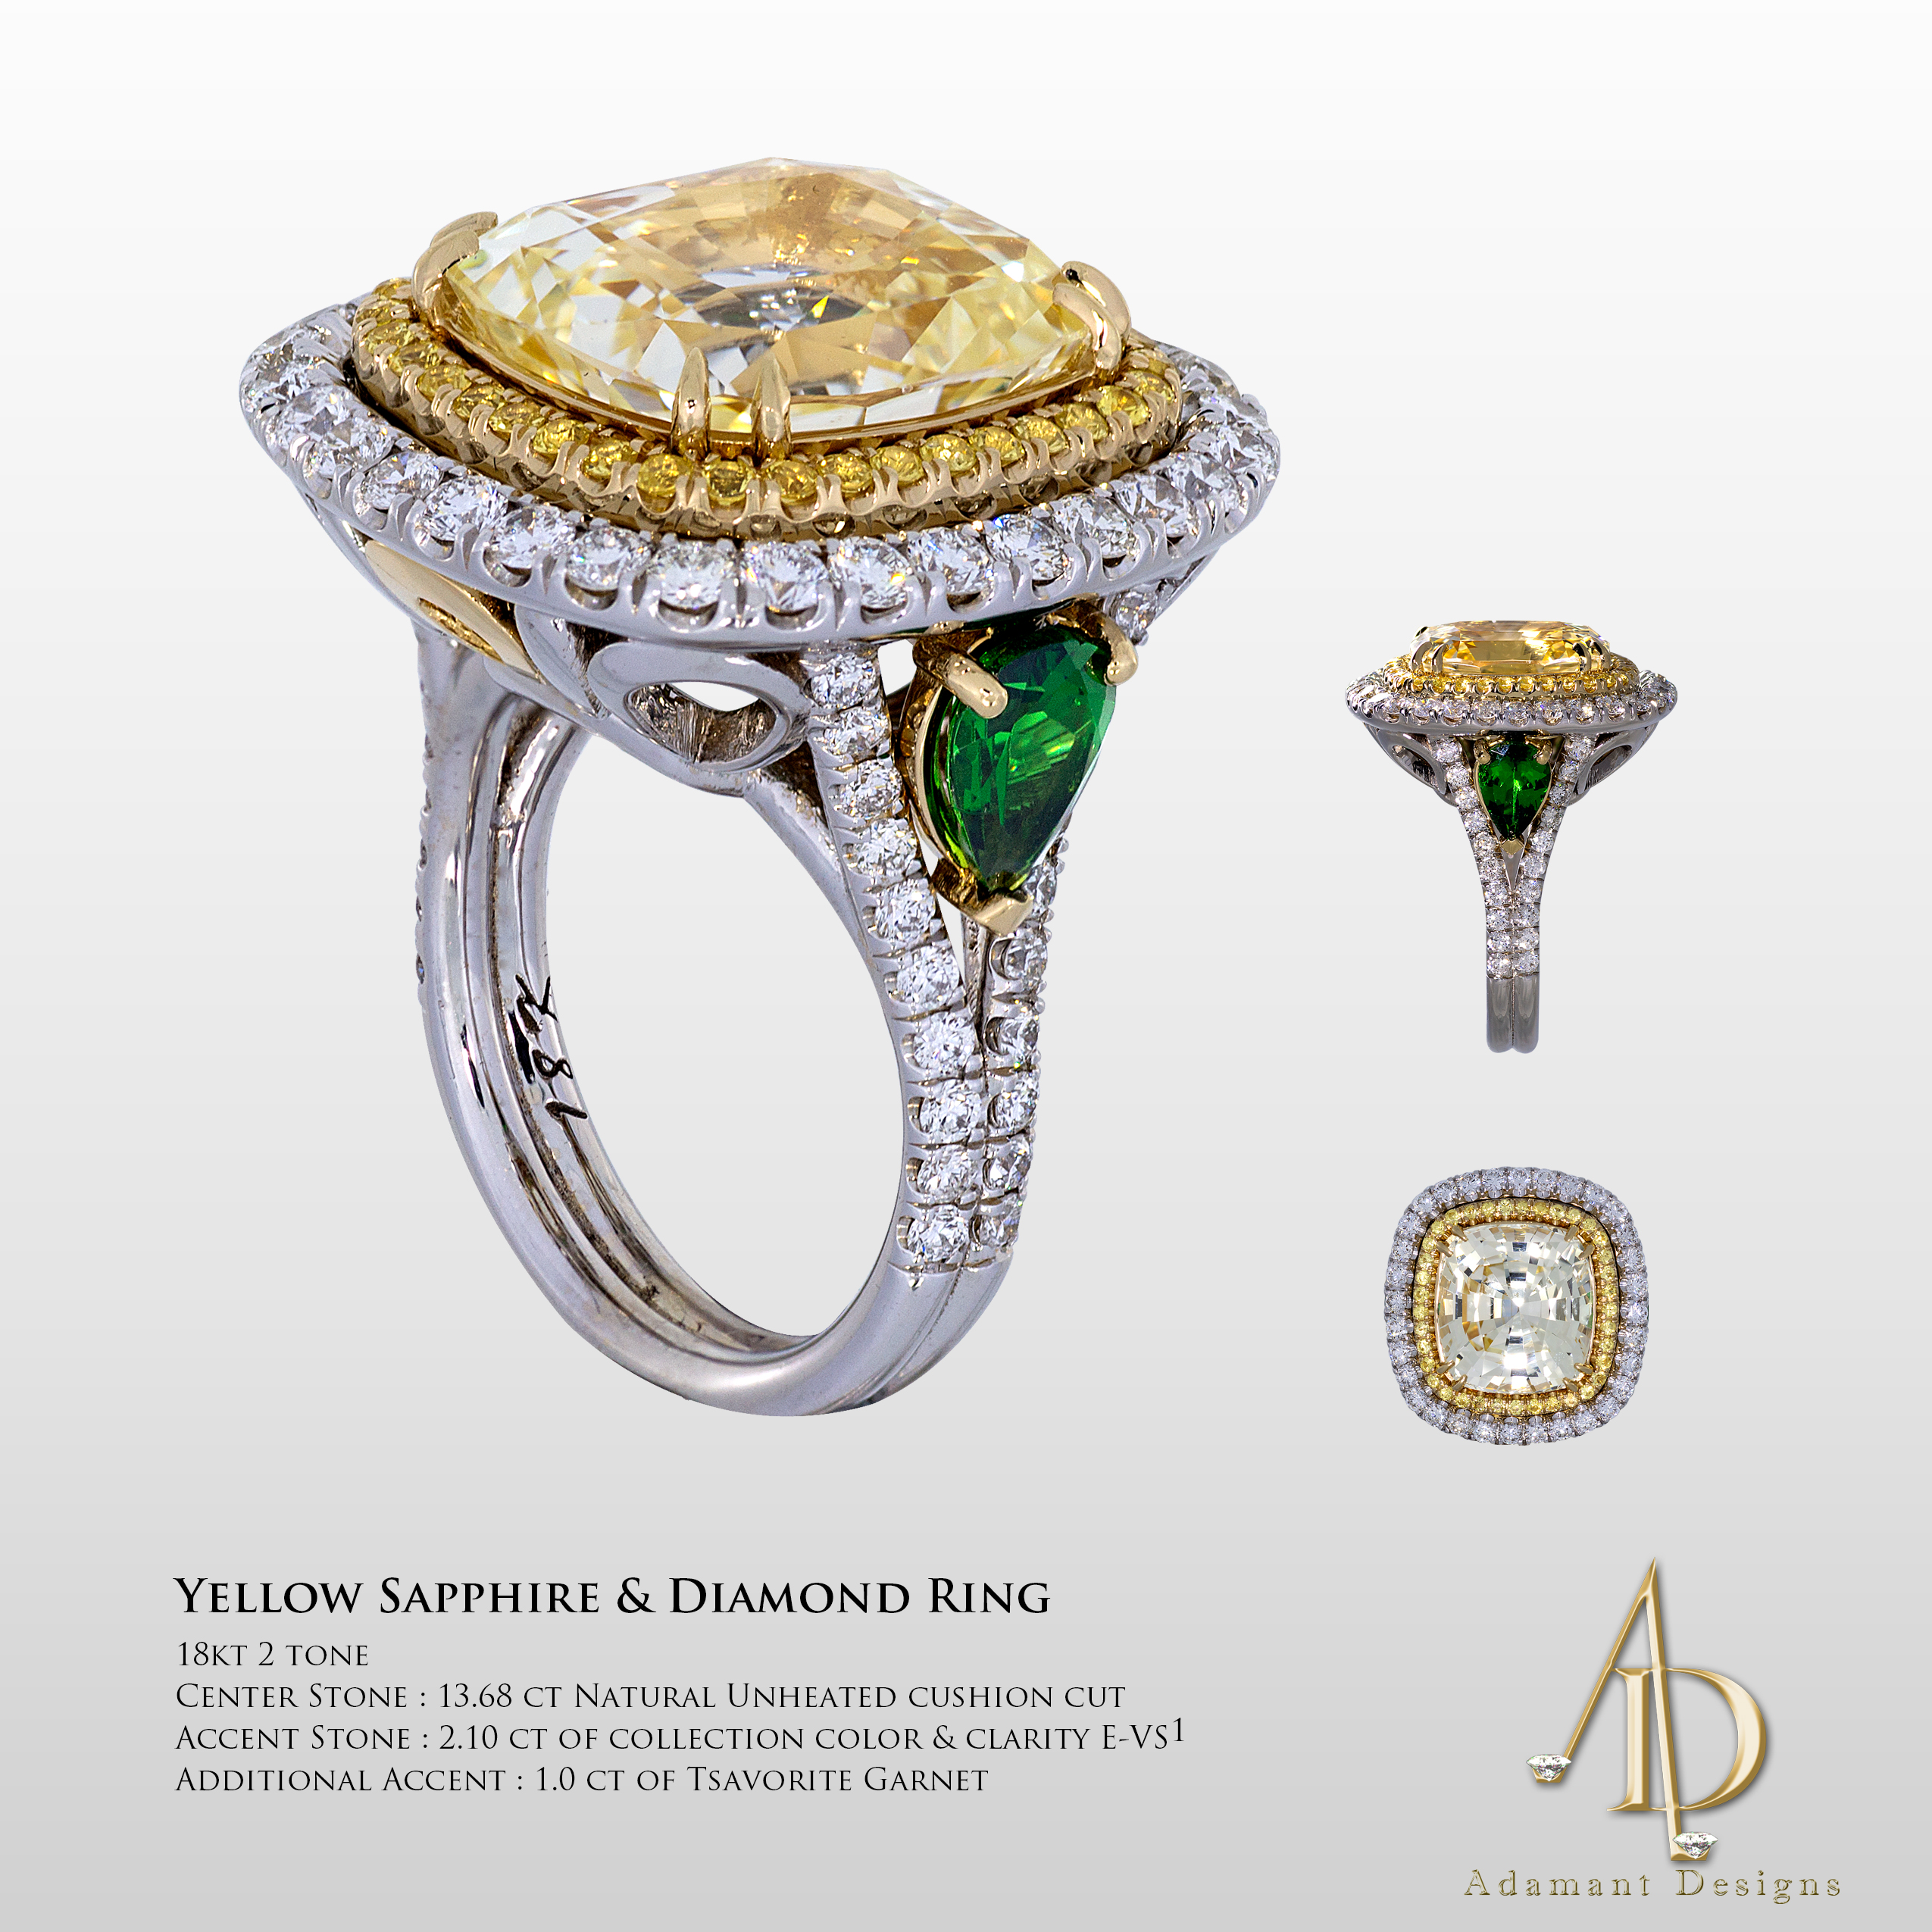 Jewelry Store Gold Amp Diamond Dealer South Bay Gold